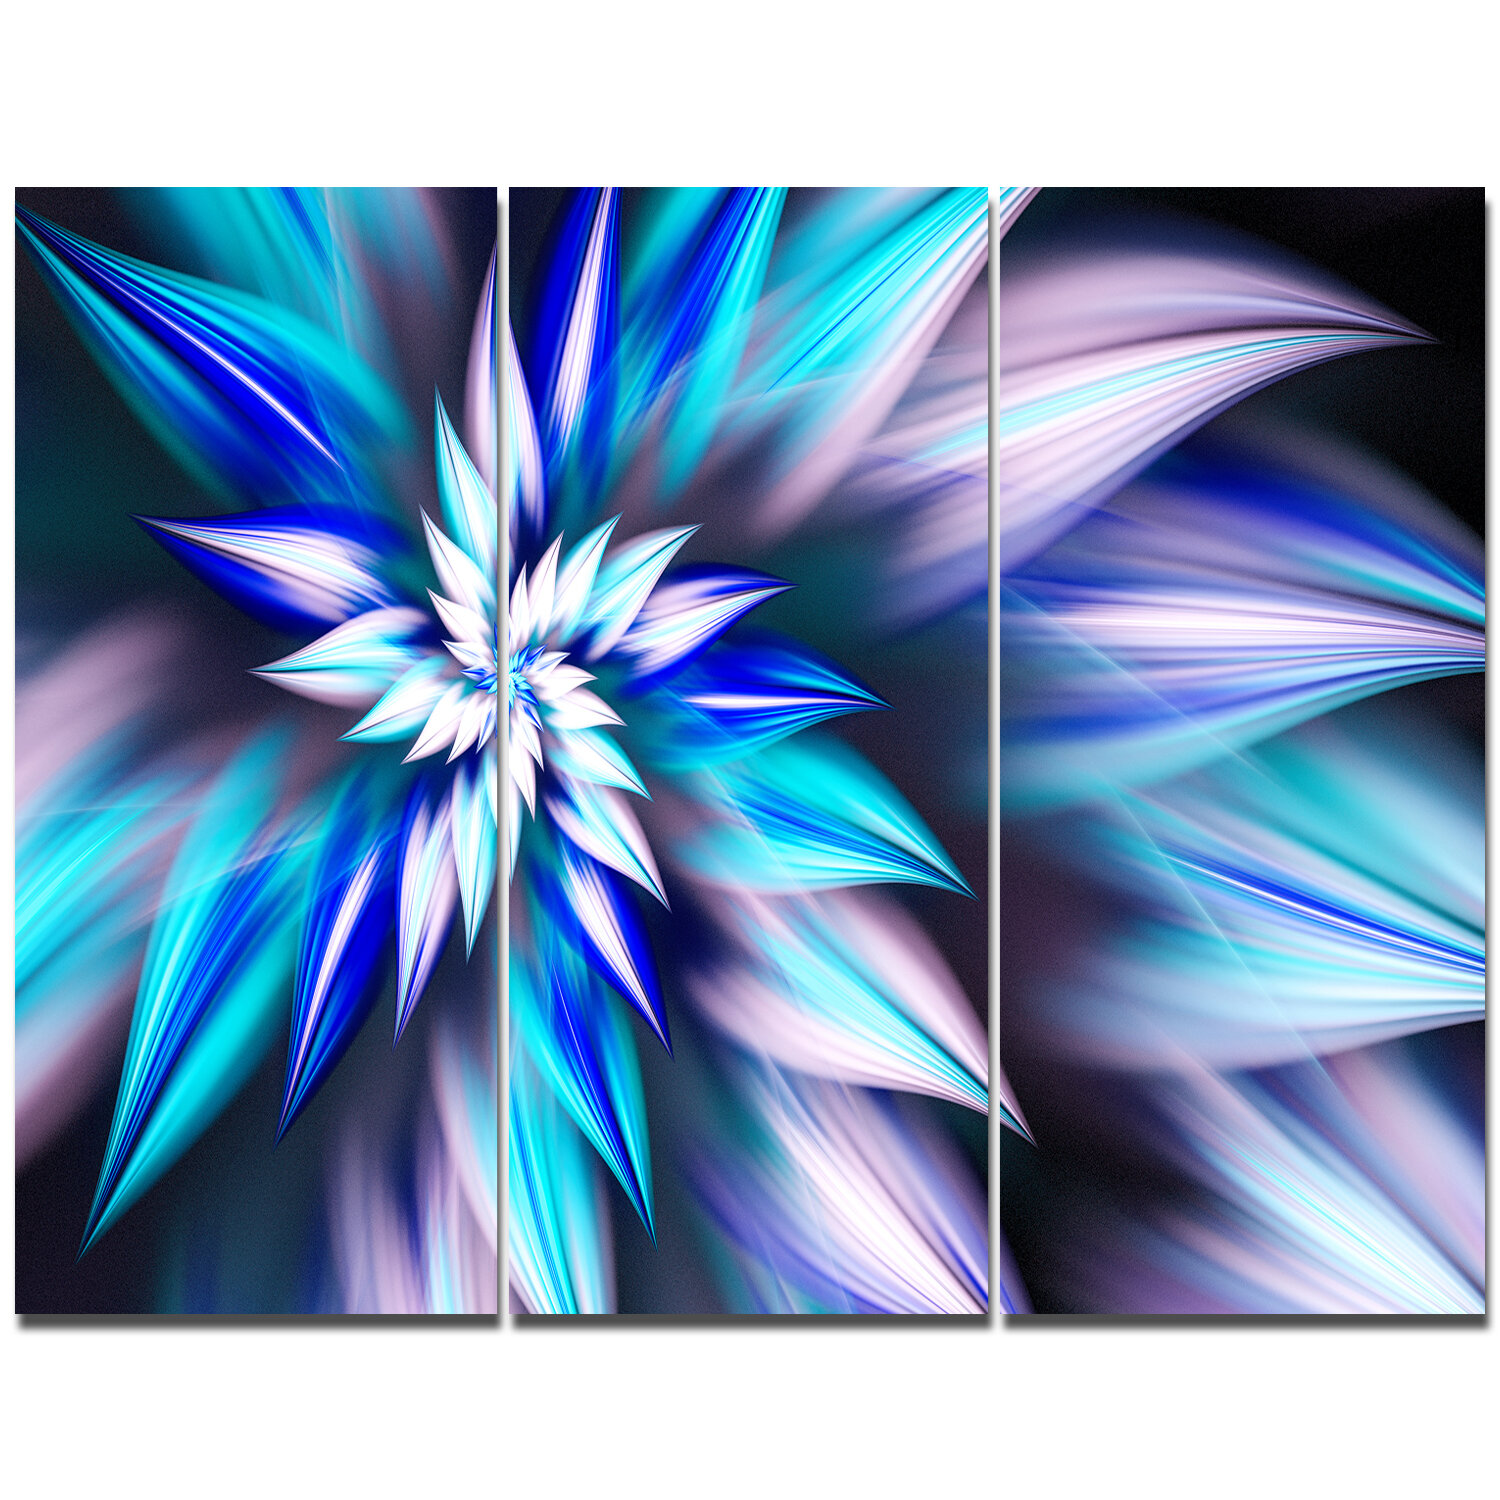 Designart dancing light blue flower petals graphic art print multi designart dancing light blue flower petals graphic art print multi piece image on canvas wayfair izmirmasajfo